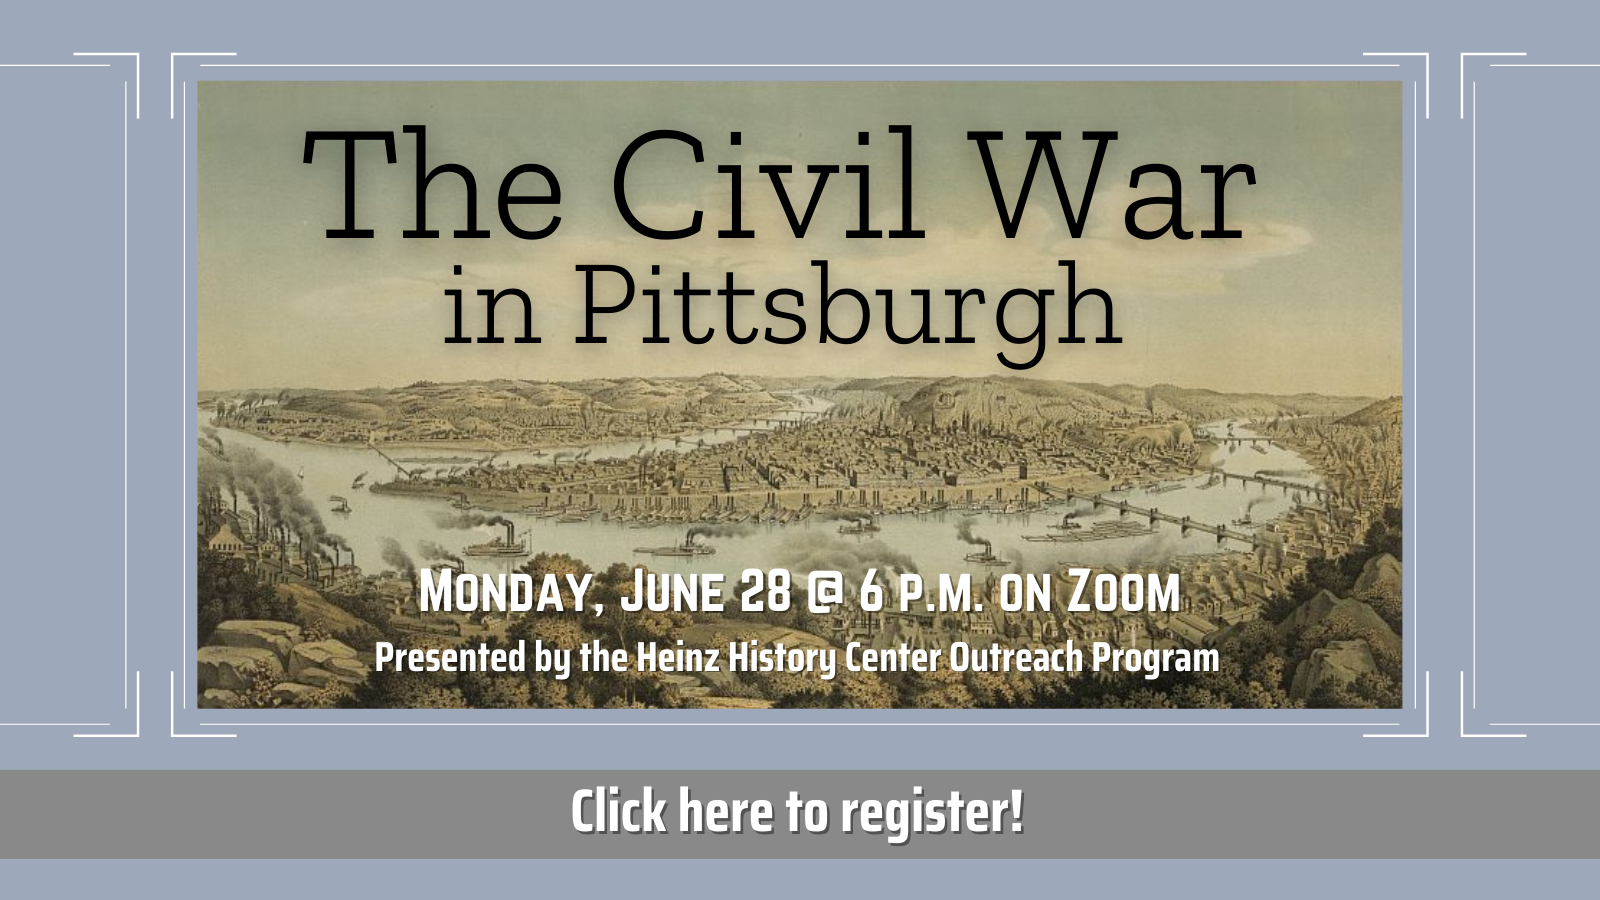 The Civil War in Pittsburgh